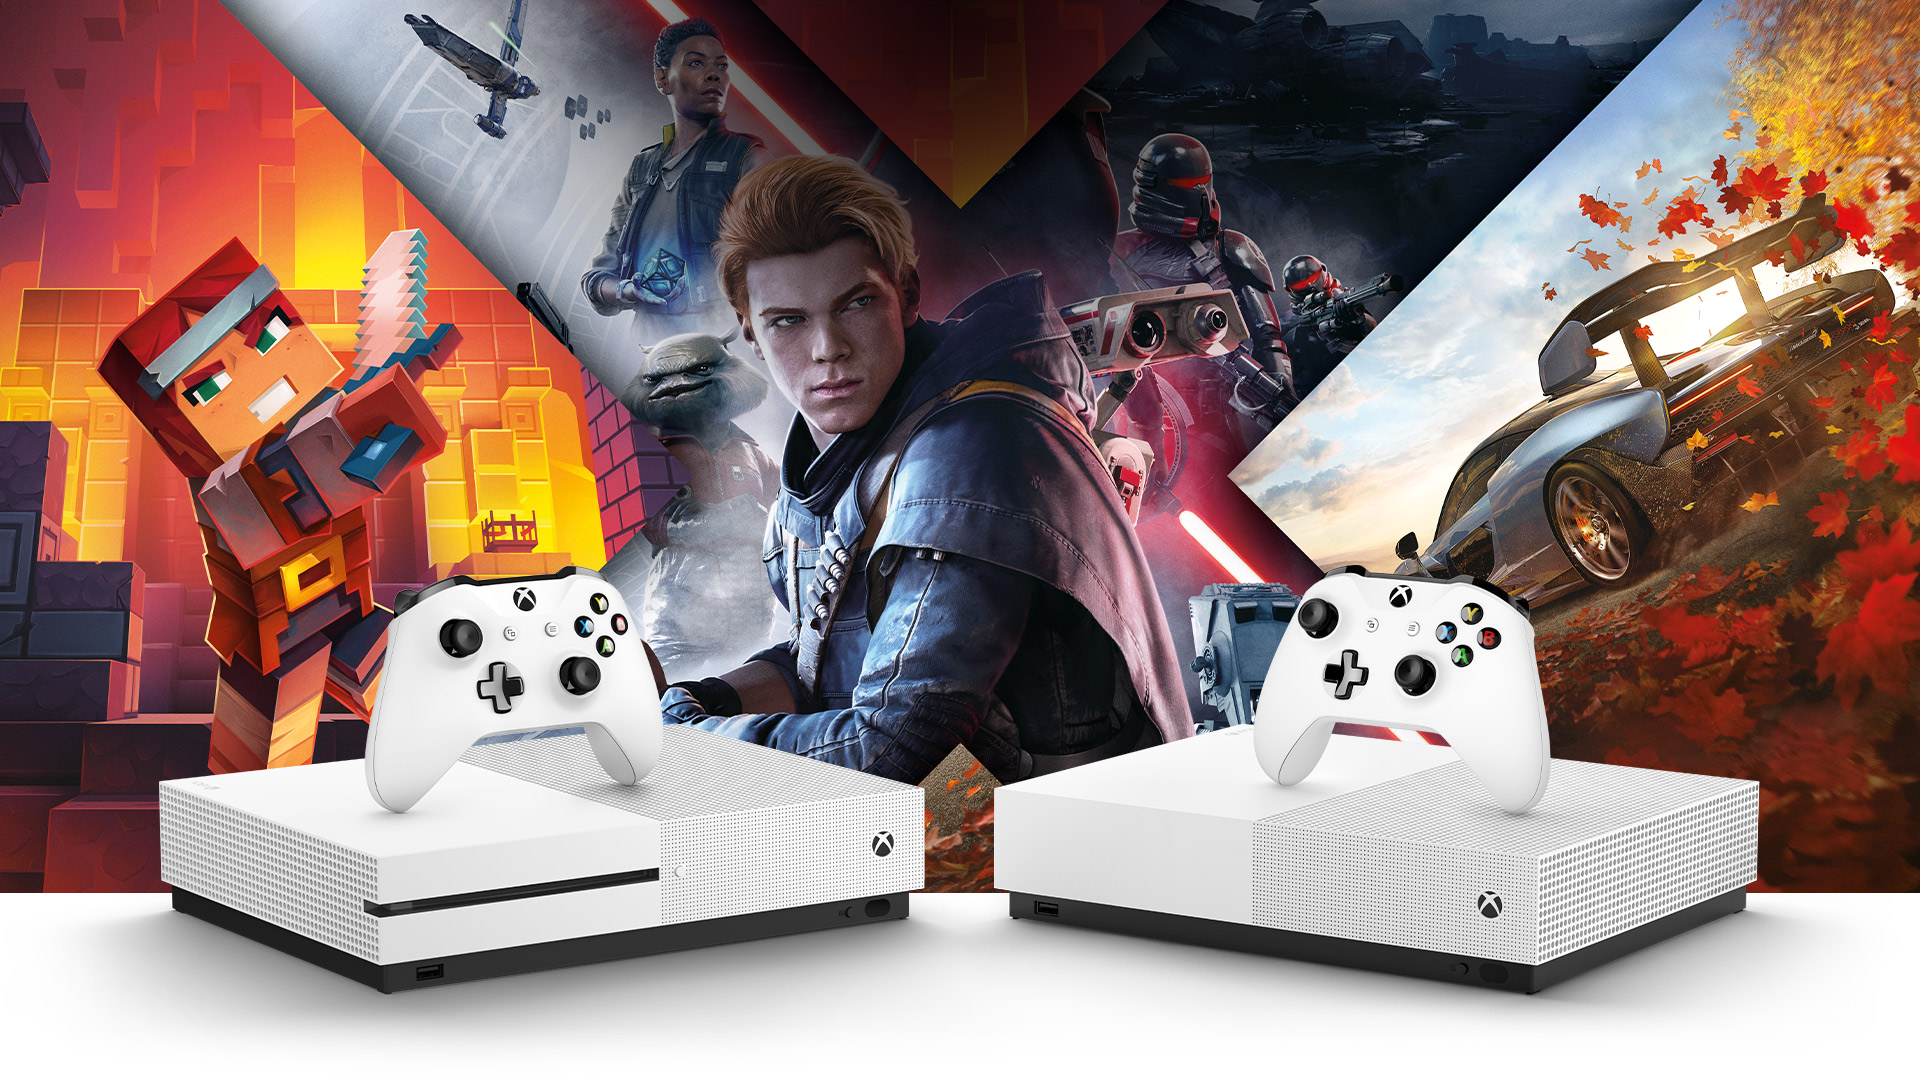 Minecraft, Forza Horizon 4, Star Wars Jedi Fallen Order のゲームアートに囲まれた Xbox One S と Xbox One S All Digital Edition 本体の正面図